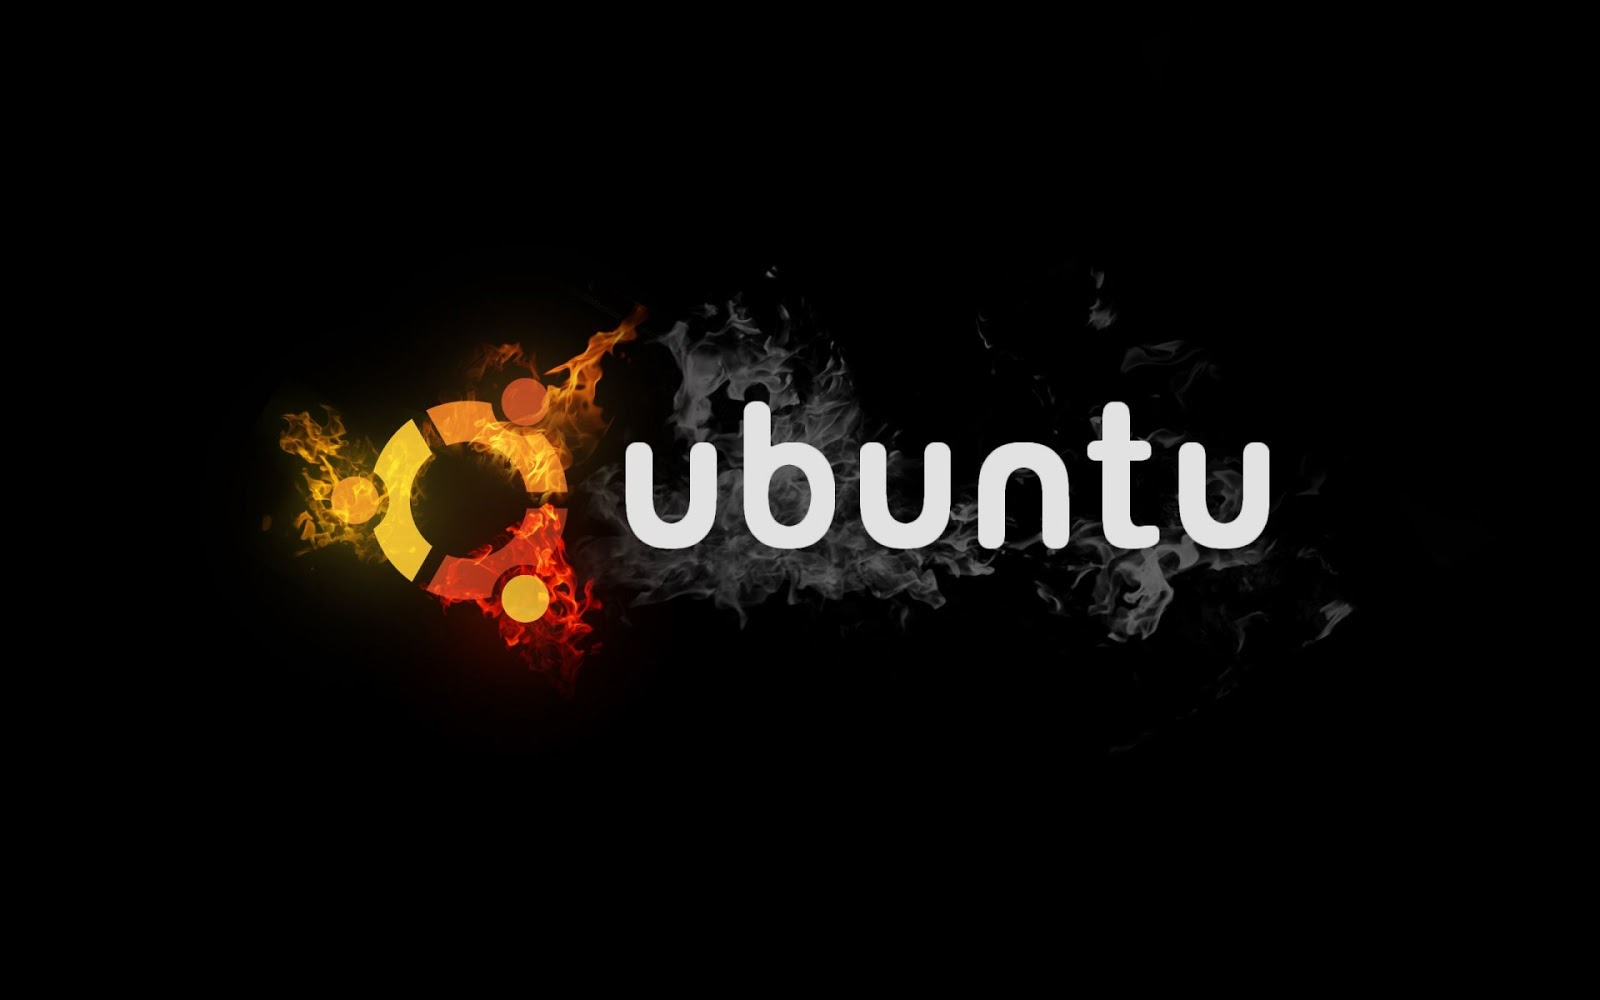 Ubuntu Burning Systems